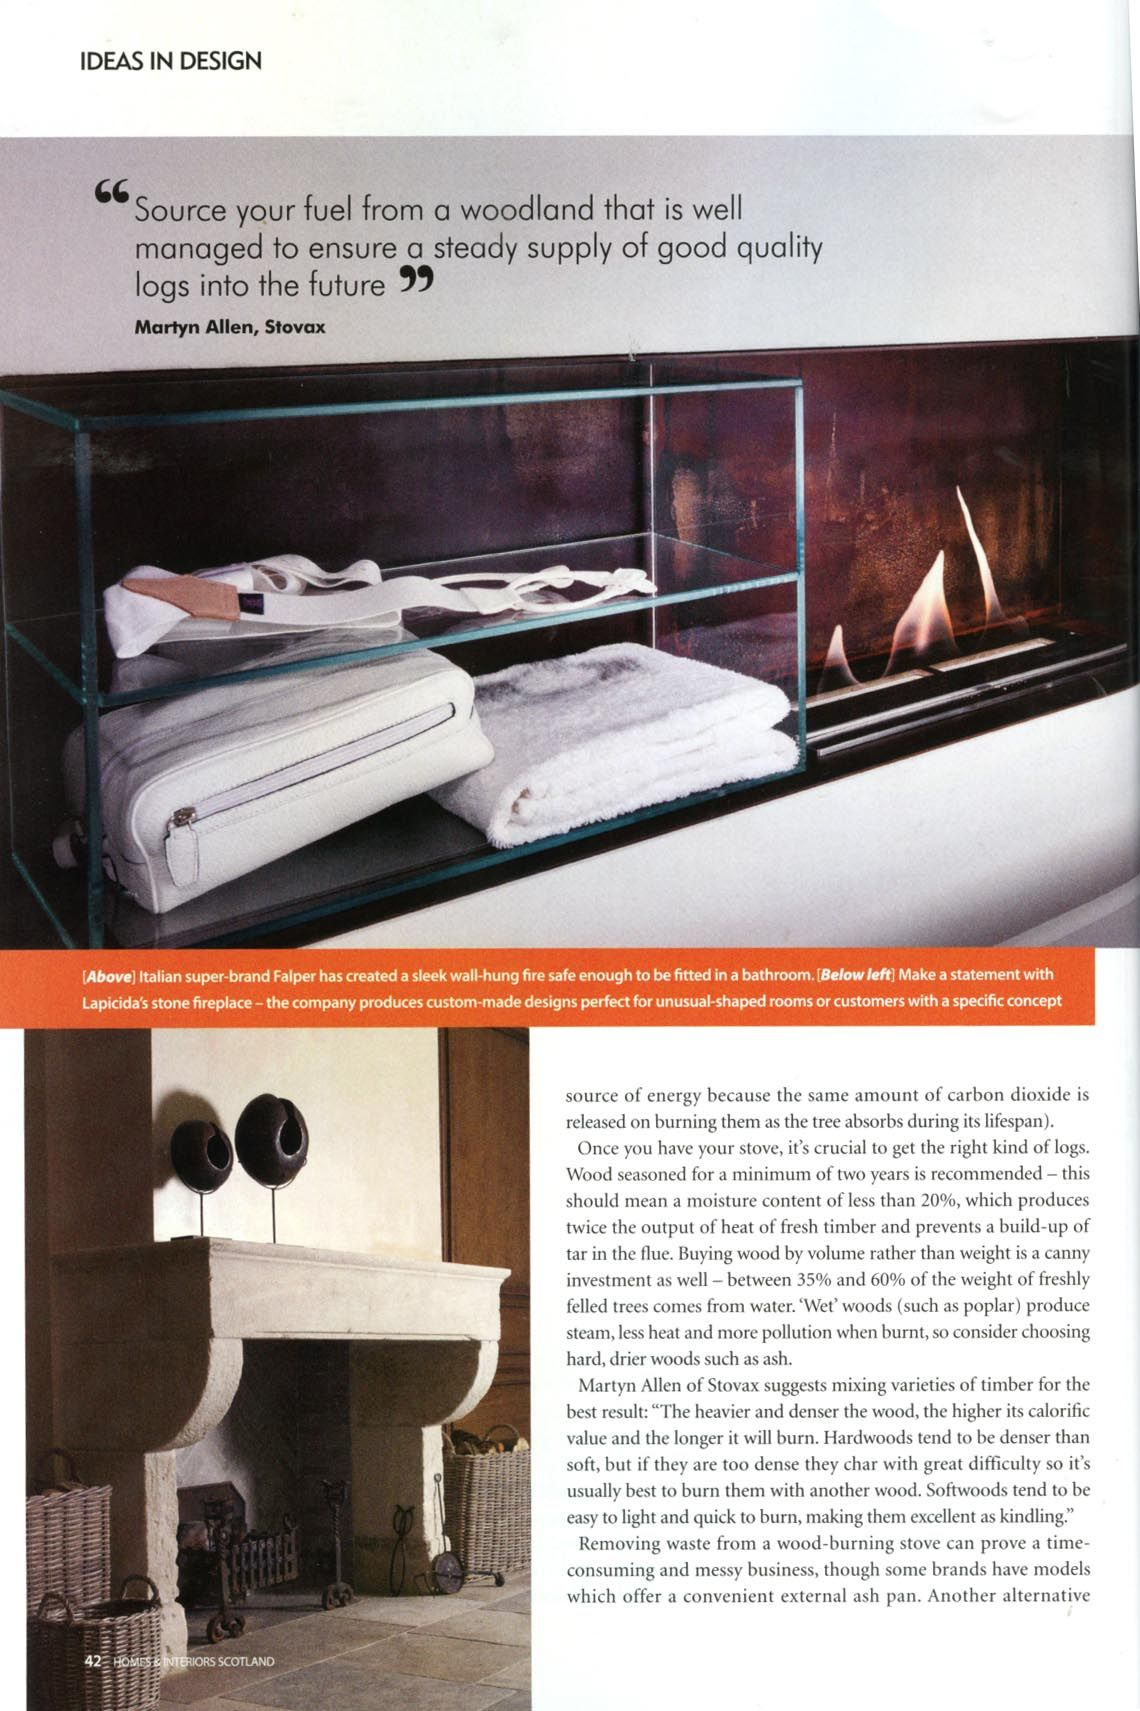 Stone fireplaces your space scotland february rock also pin by arc pr on lapicida in the press interior suits you rh za pinterest